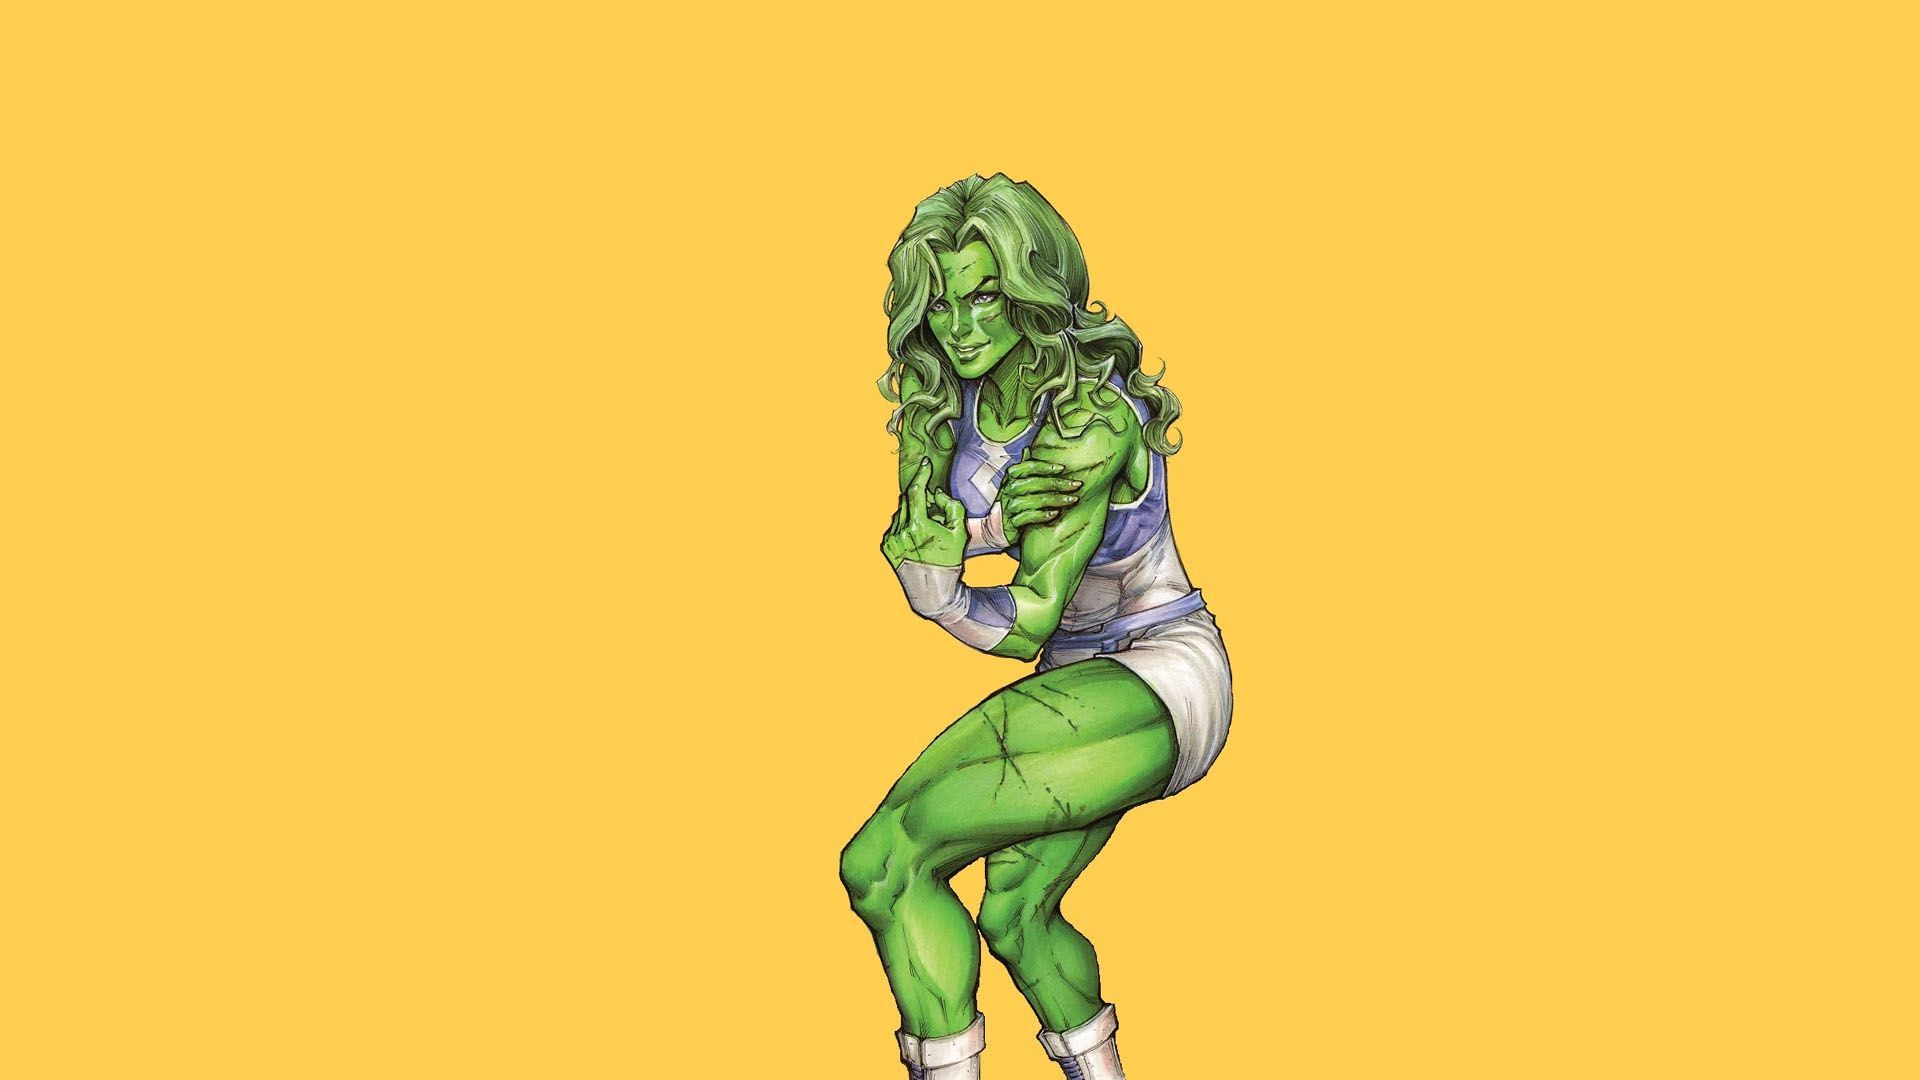 She Hulk Wallpaper 48685 1920x1080